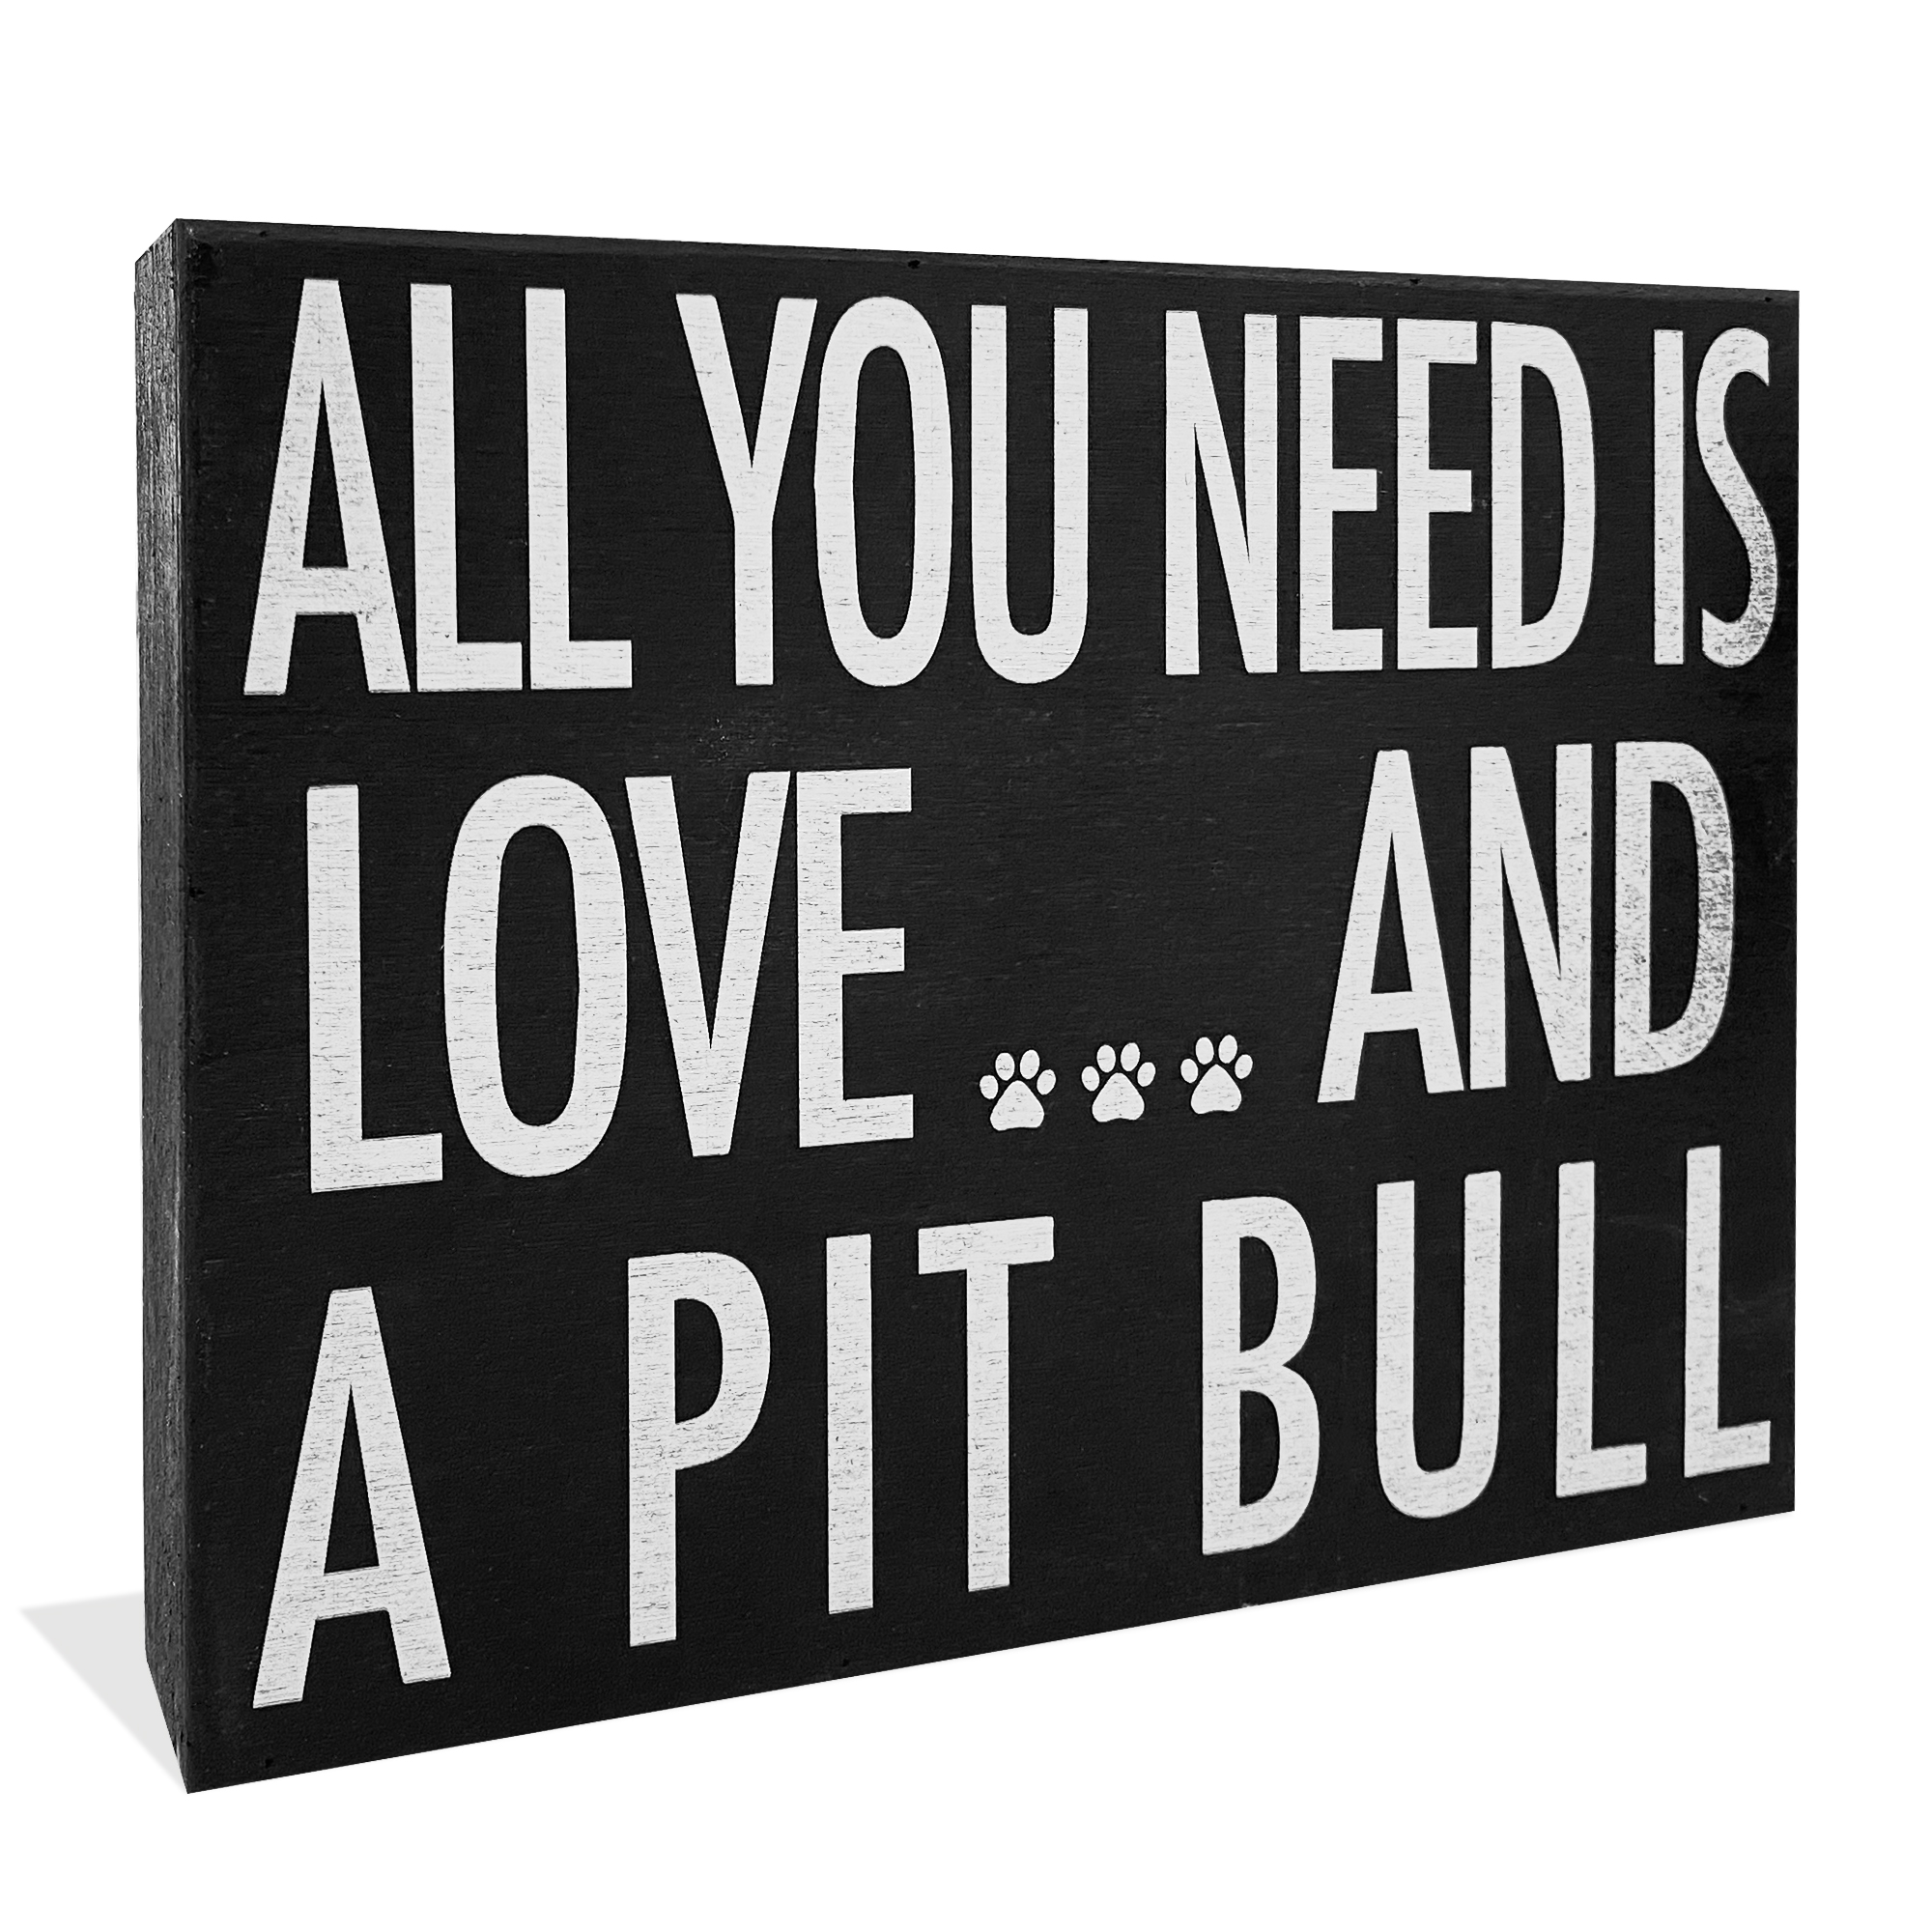 Jennygems All You Need Is Love And A Pit Bull Pitbull Wood Pitbull Sign American Pit Bull Terrier Home Decor Pitbull Mom Wood Box Sign 8 X 6 Inches Walmart Com Walmart Com